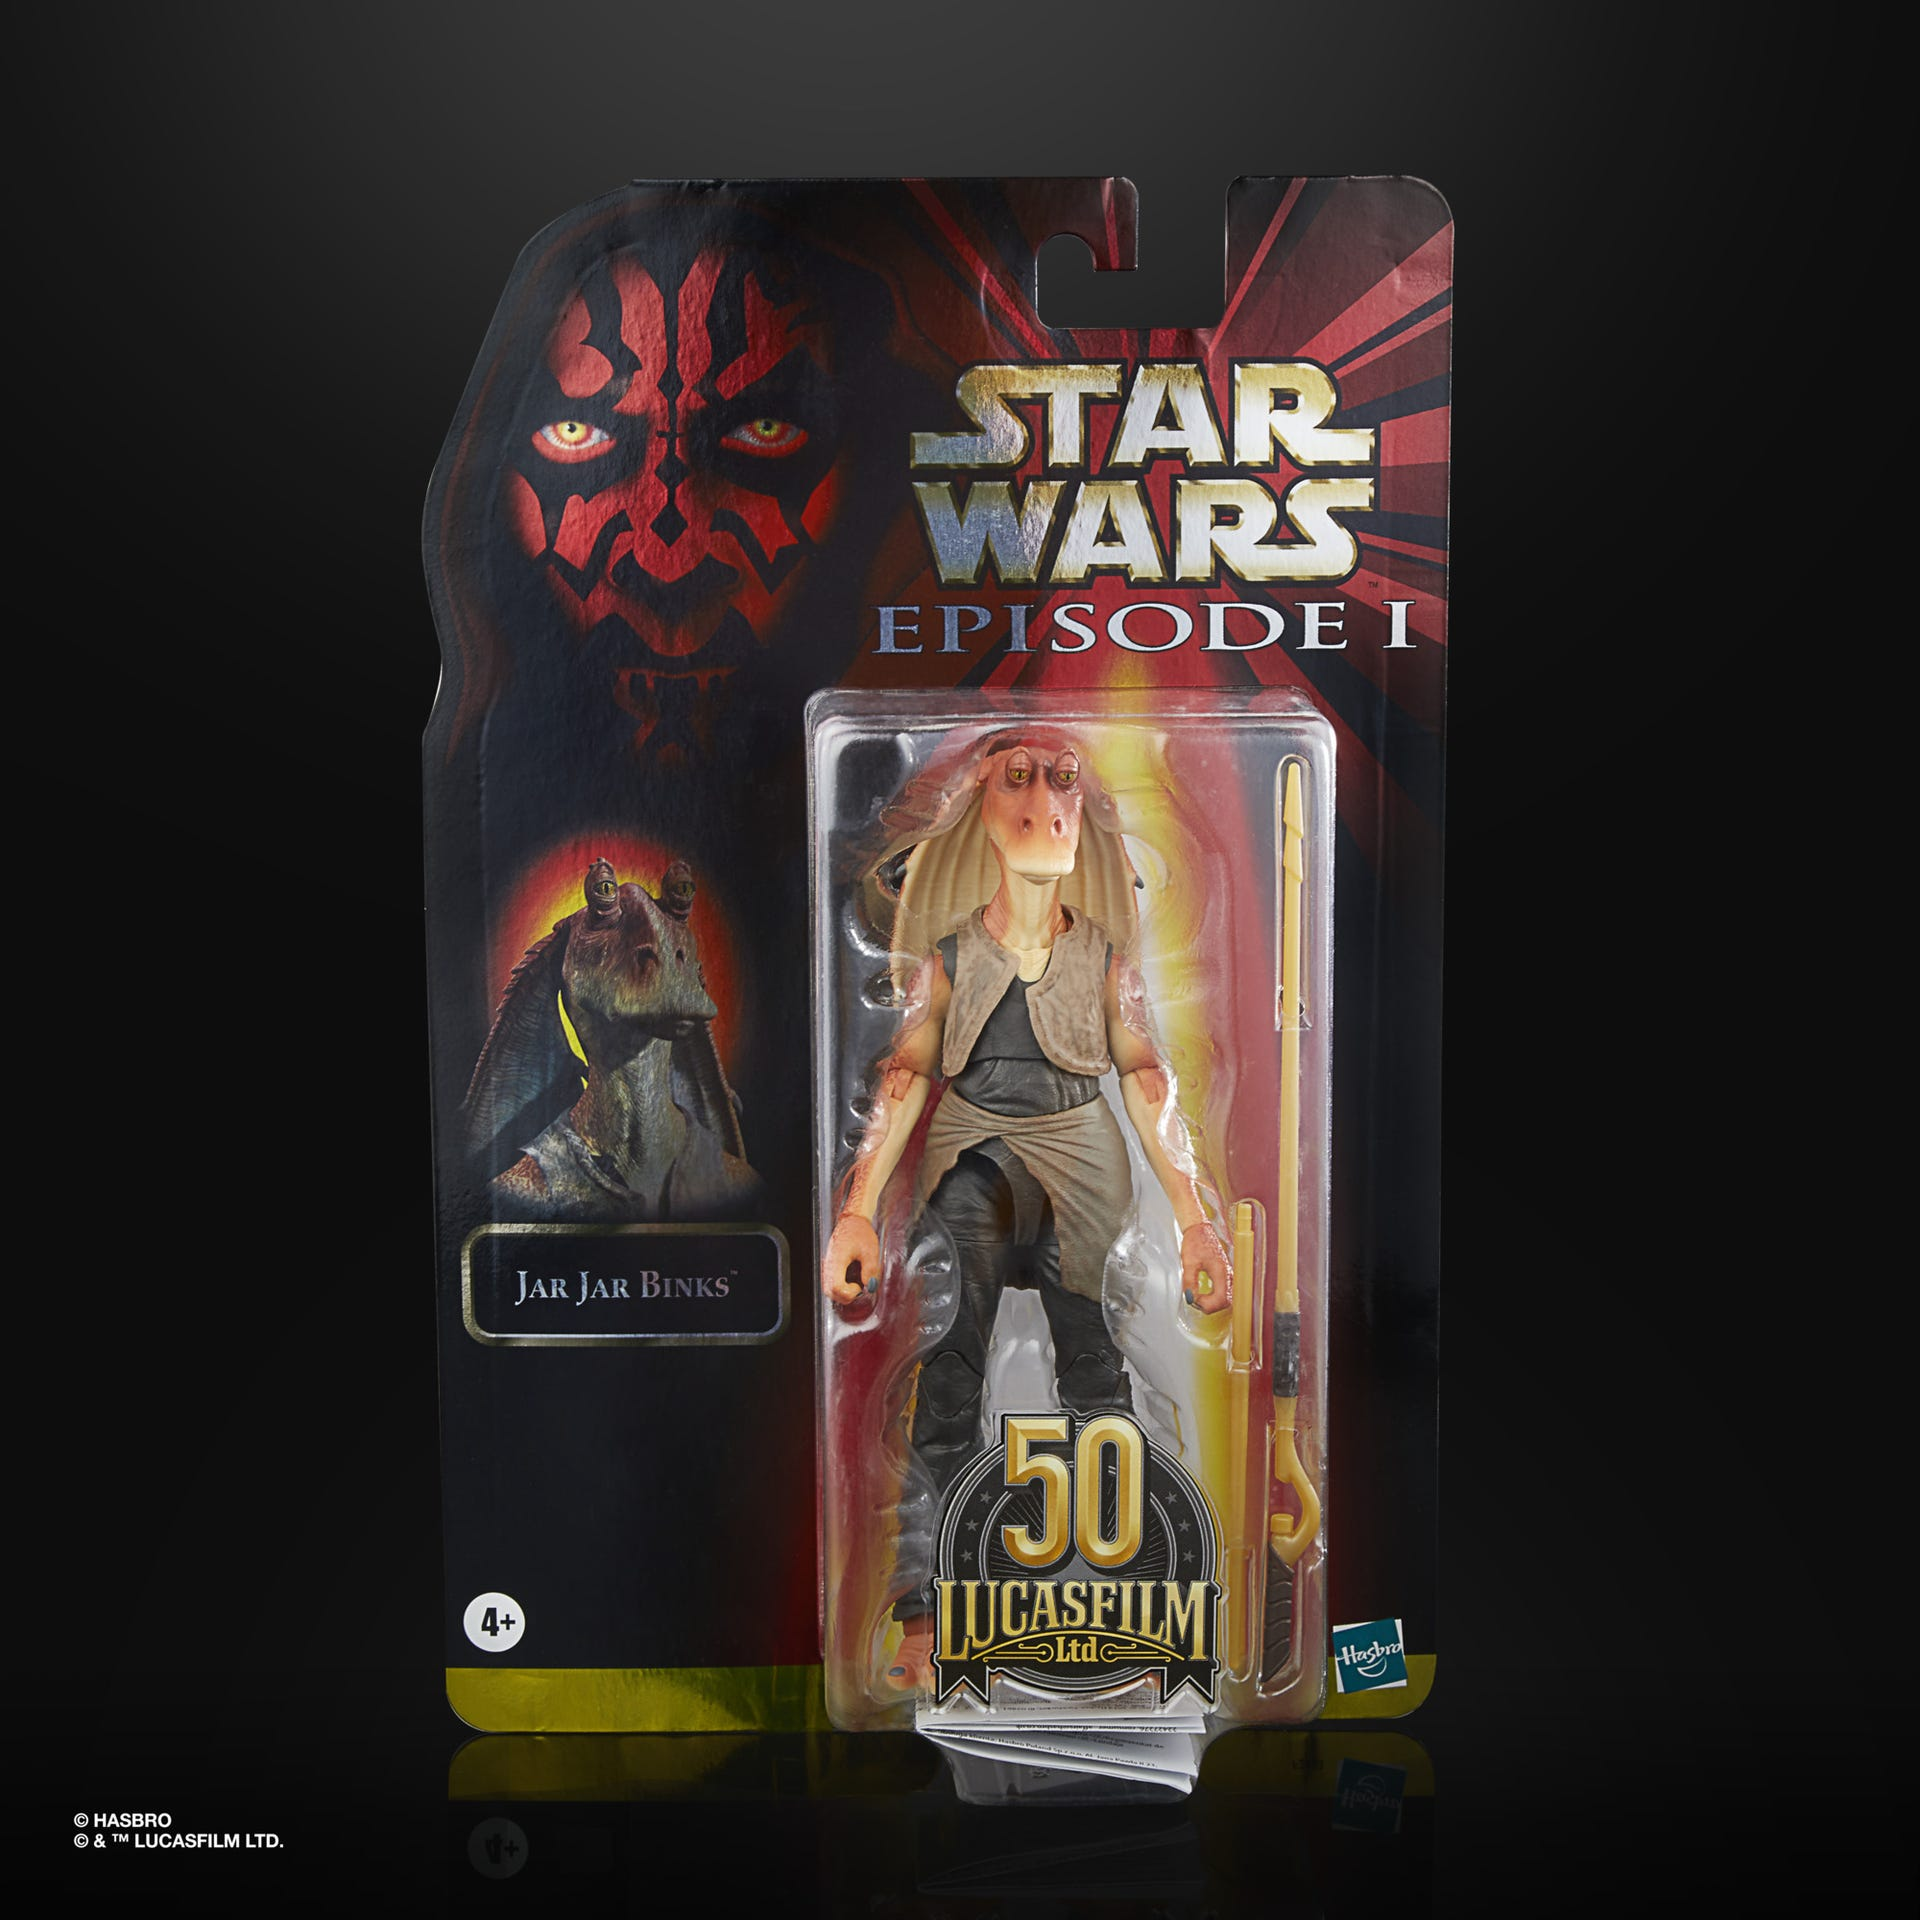 Star Wars The Black Series Jar Jar Binks LUCASFILM 50TH ANNIVERSARY FIGURE F28035L00 5010993866212